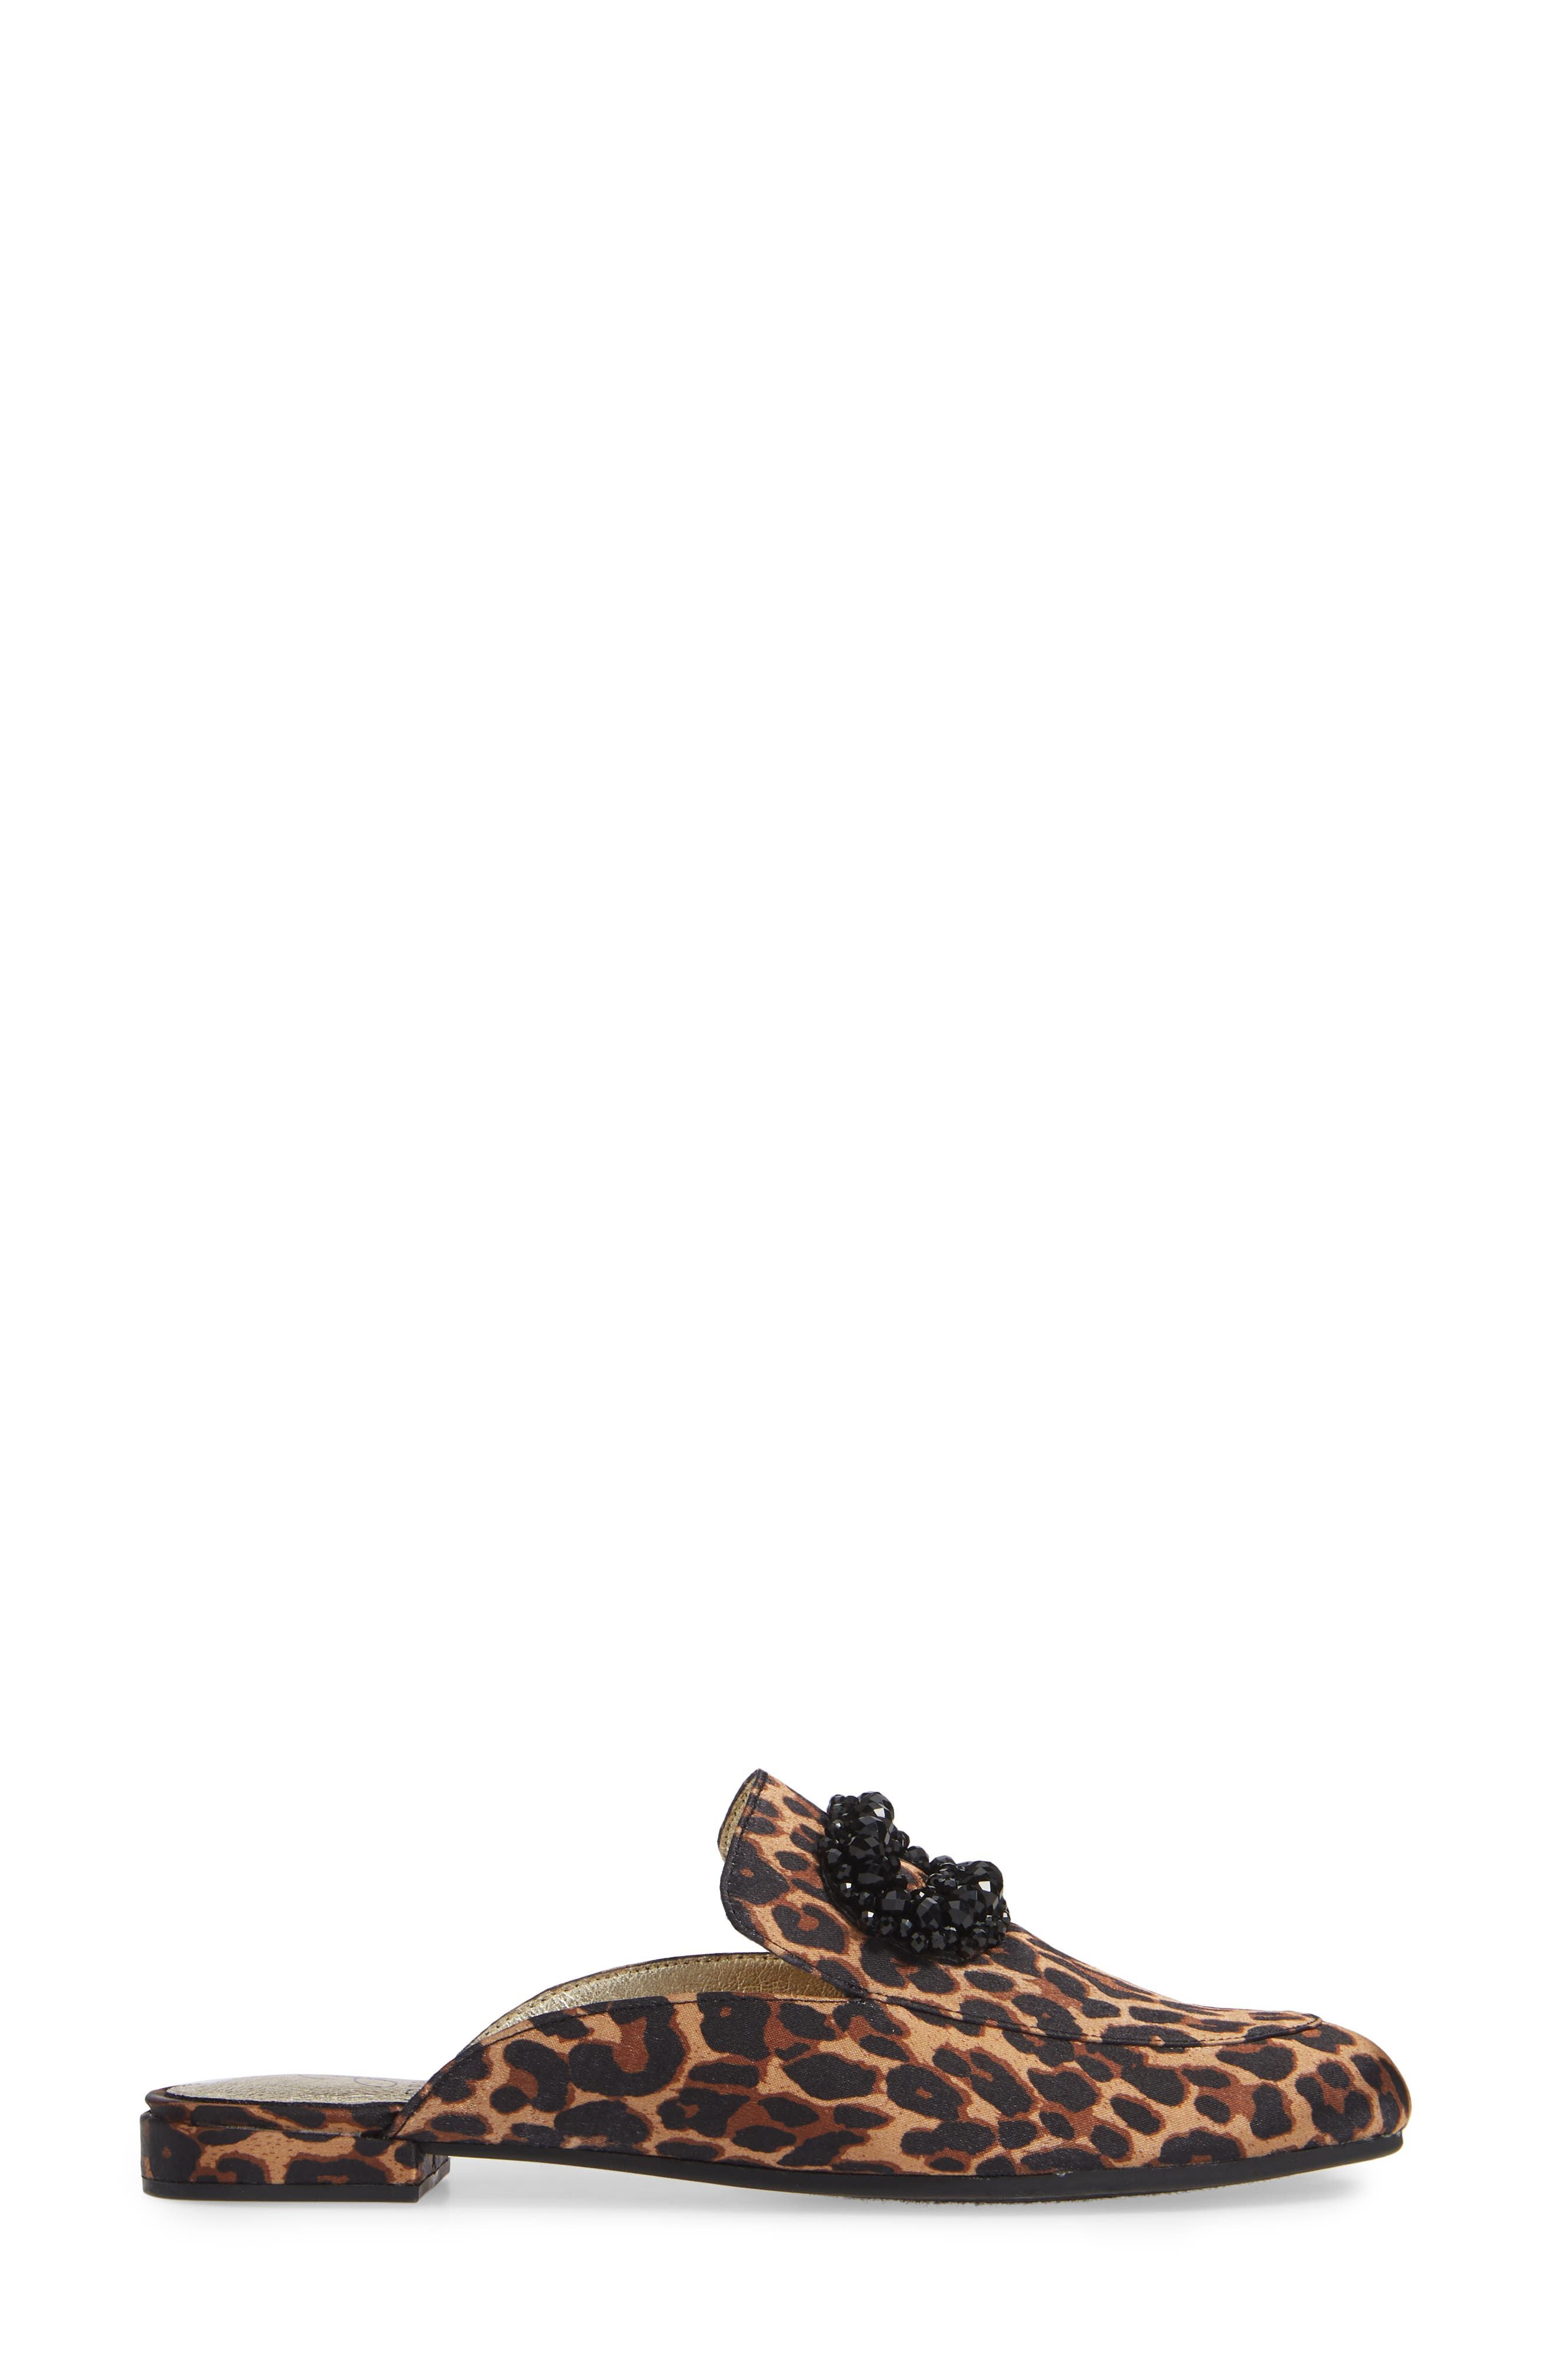 ADRIANNA PAPELL,                             Becky Embellished Mule,                             Alternate thumbnail 3, color,                             LEOPARD